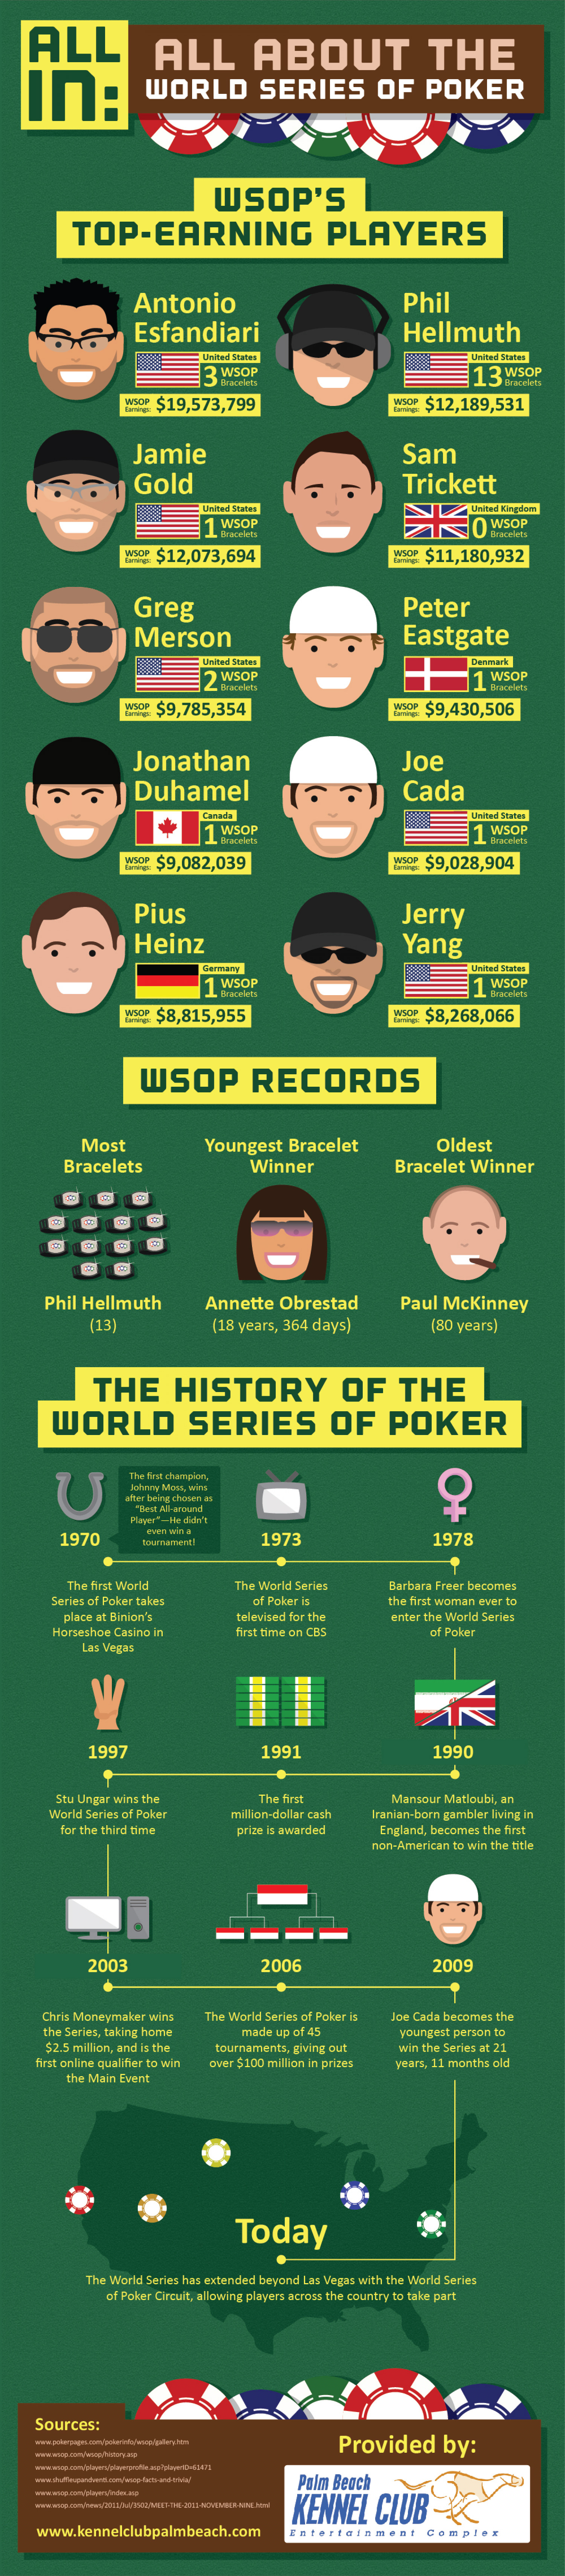 All In: All About the World Series of Poker Infographic